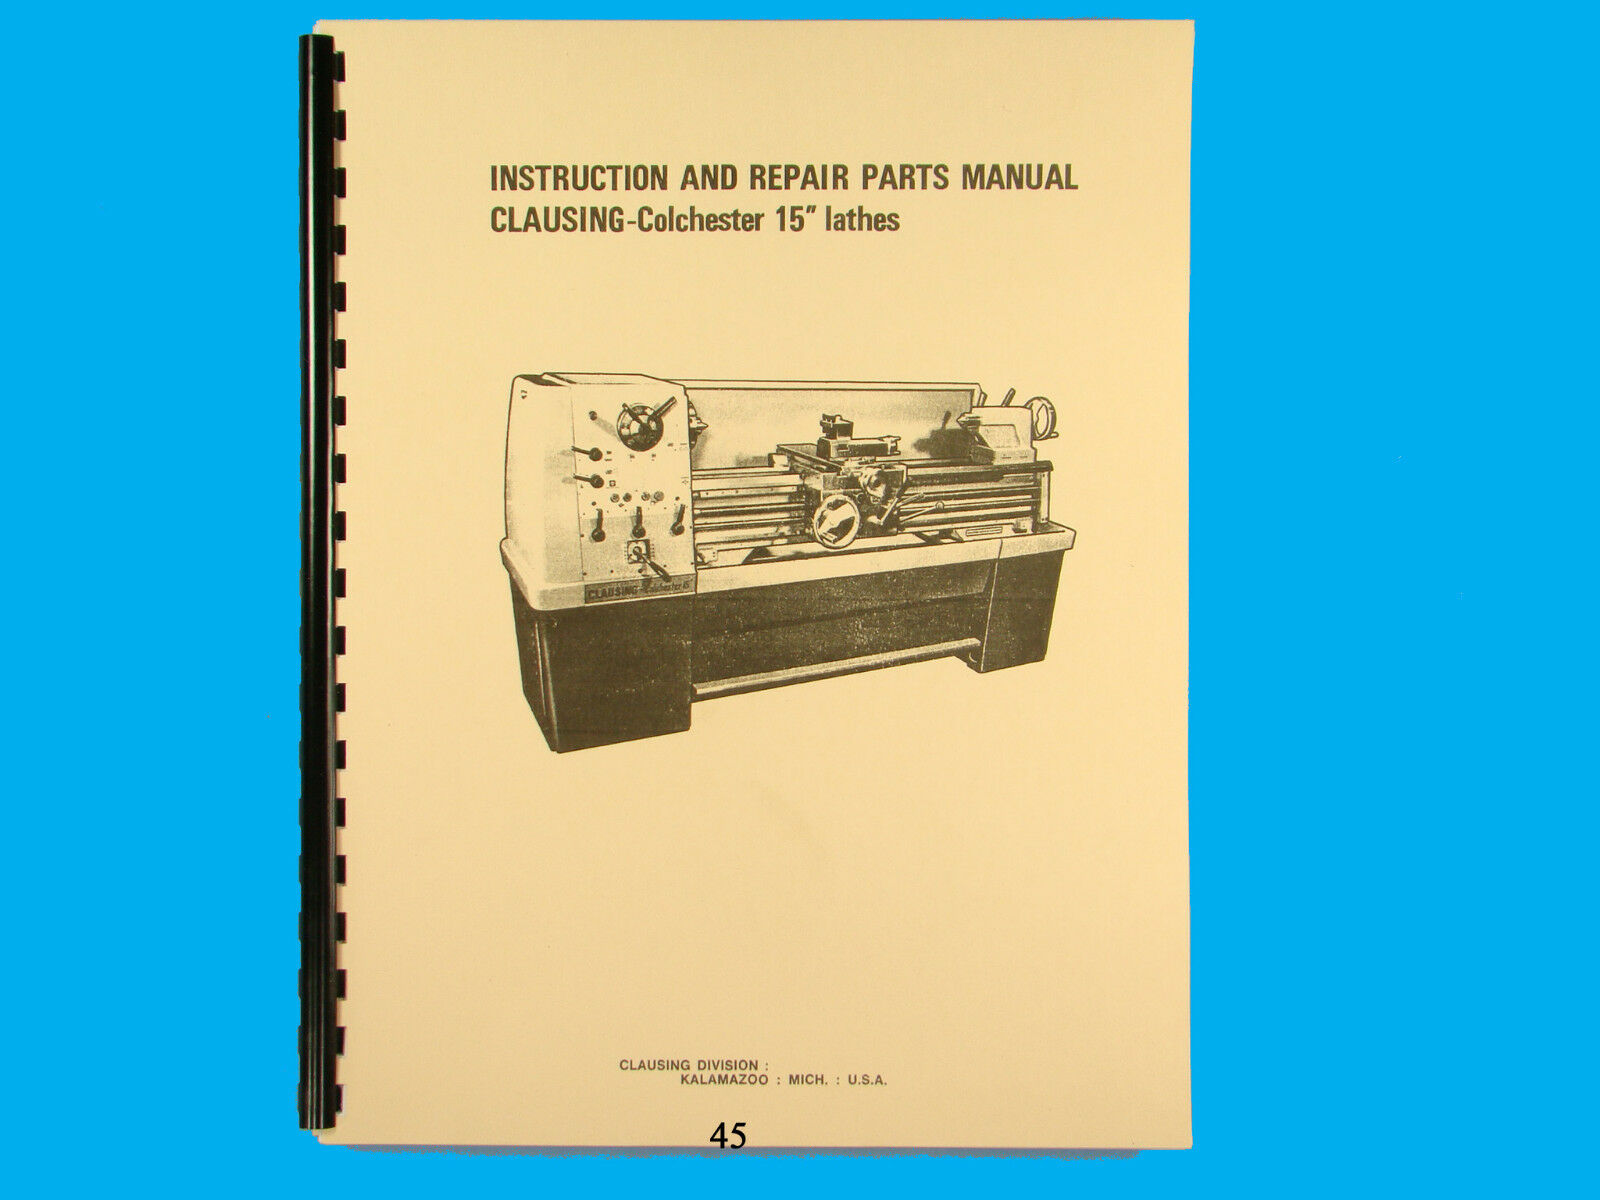 """Clausing Colchester 15/"""" Lathe 15x30  15x48 Gap Bed Instruct /& Parts Manual #1362"""